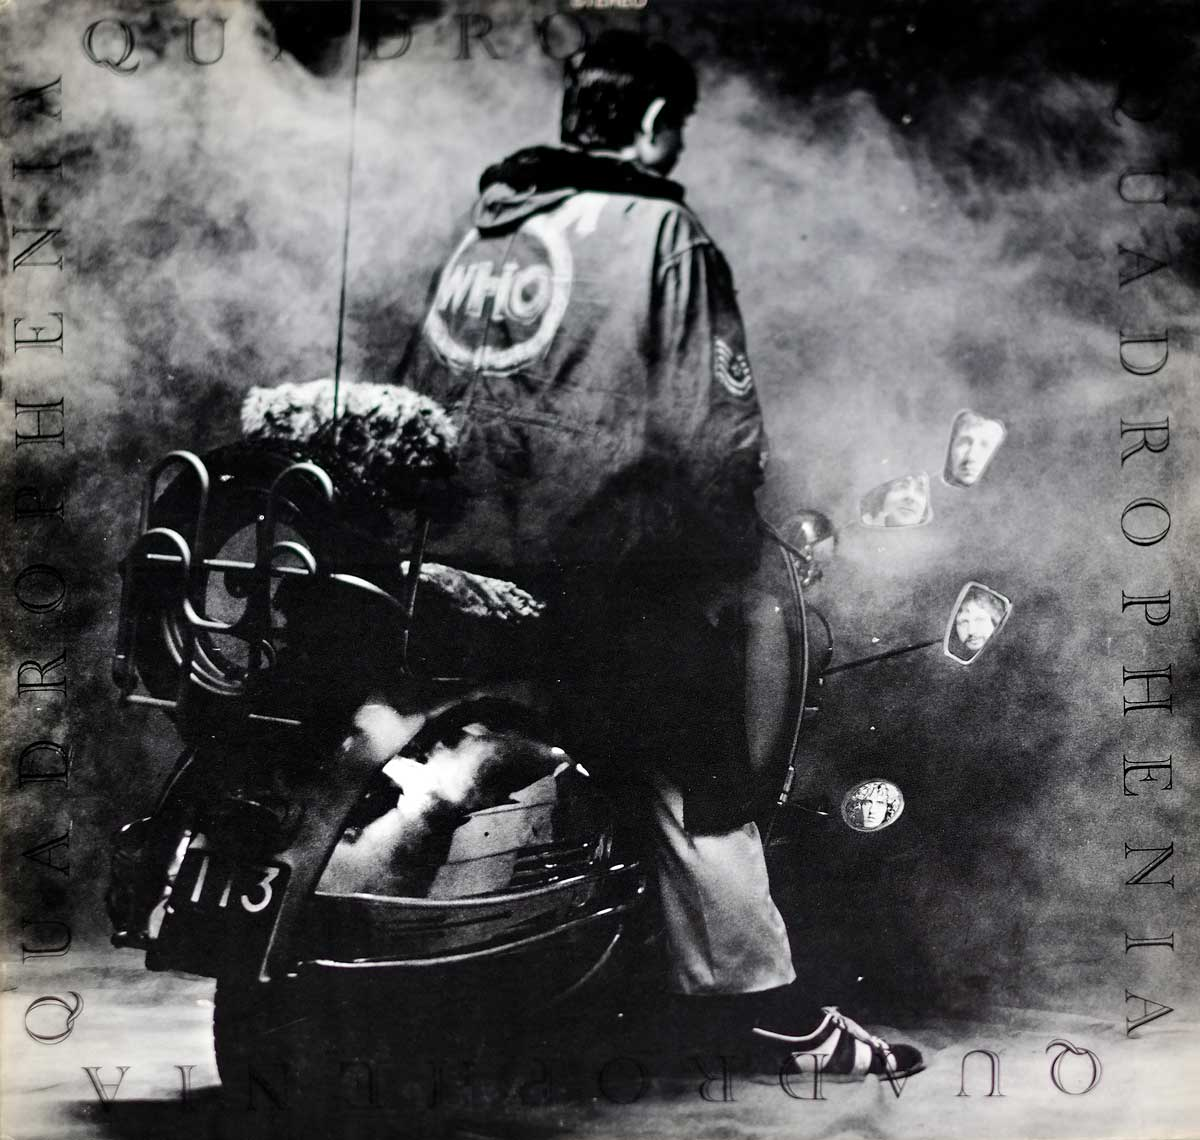 "large photo of the album front cover of: THE WHO - Quadrophenia Gatefold Cover USA Release 12"" LP VINYL Album"